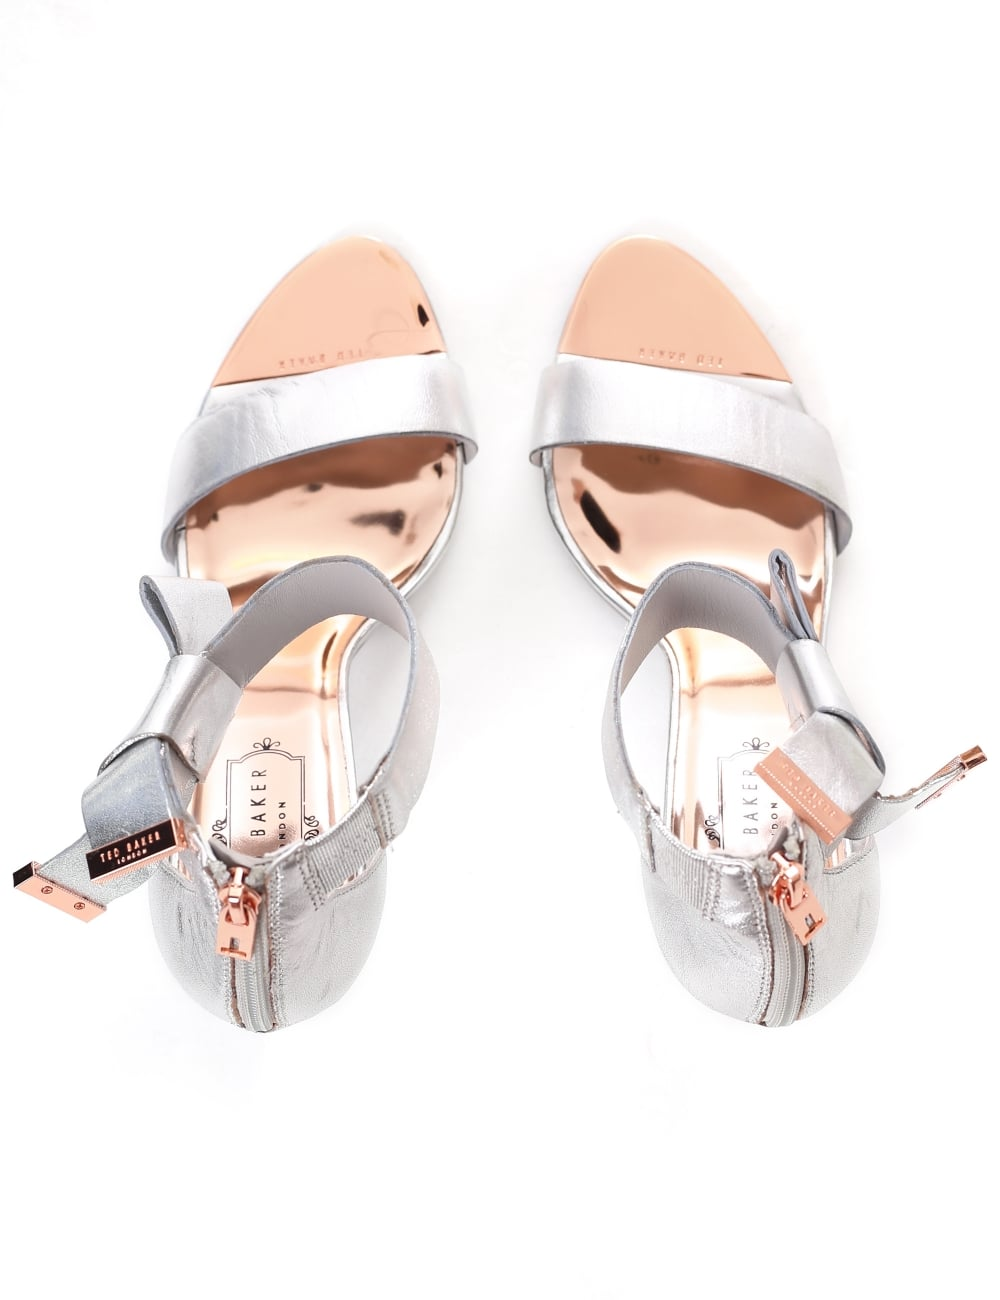 5e5979d496f3 Ted Baker Women s Saphrun Knotted Now Leather Sandals